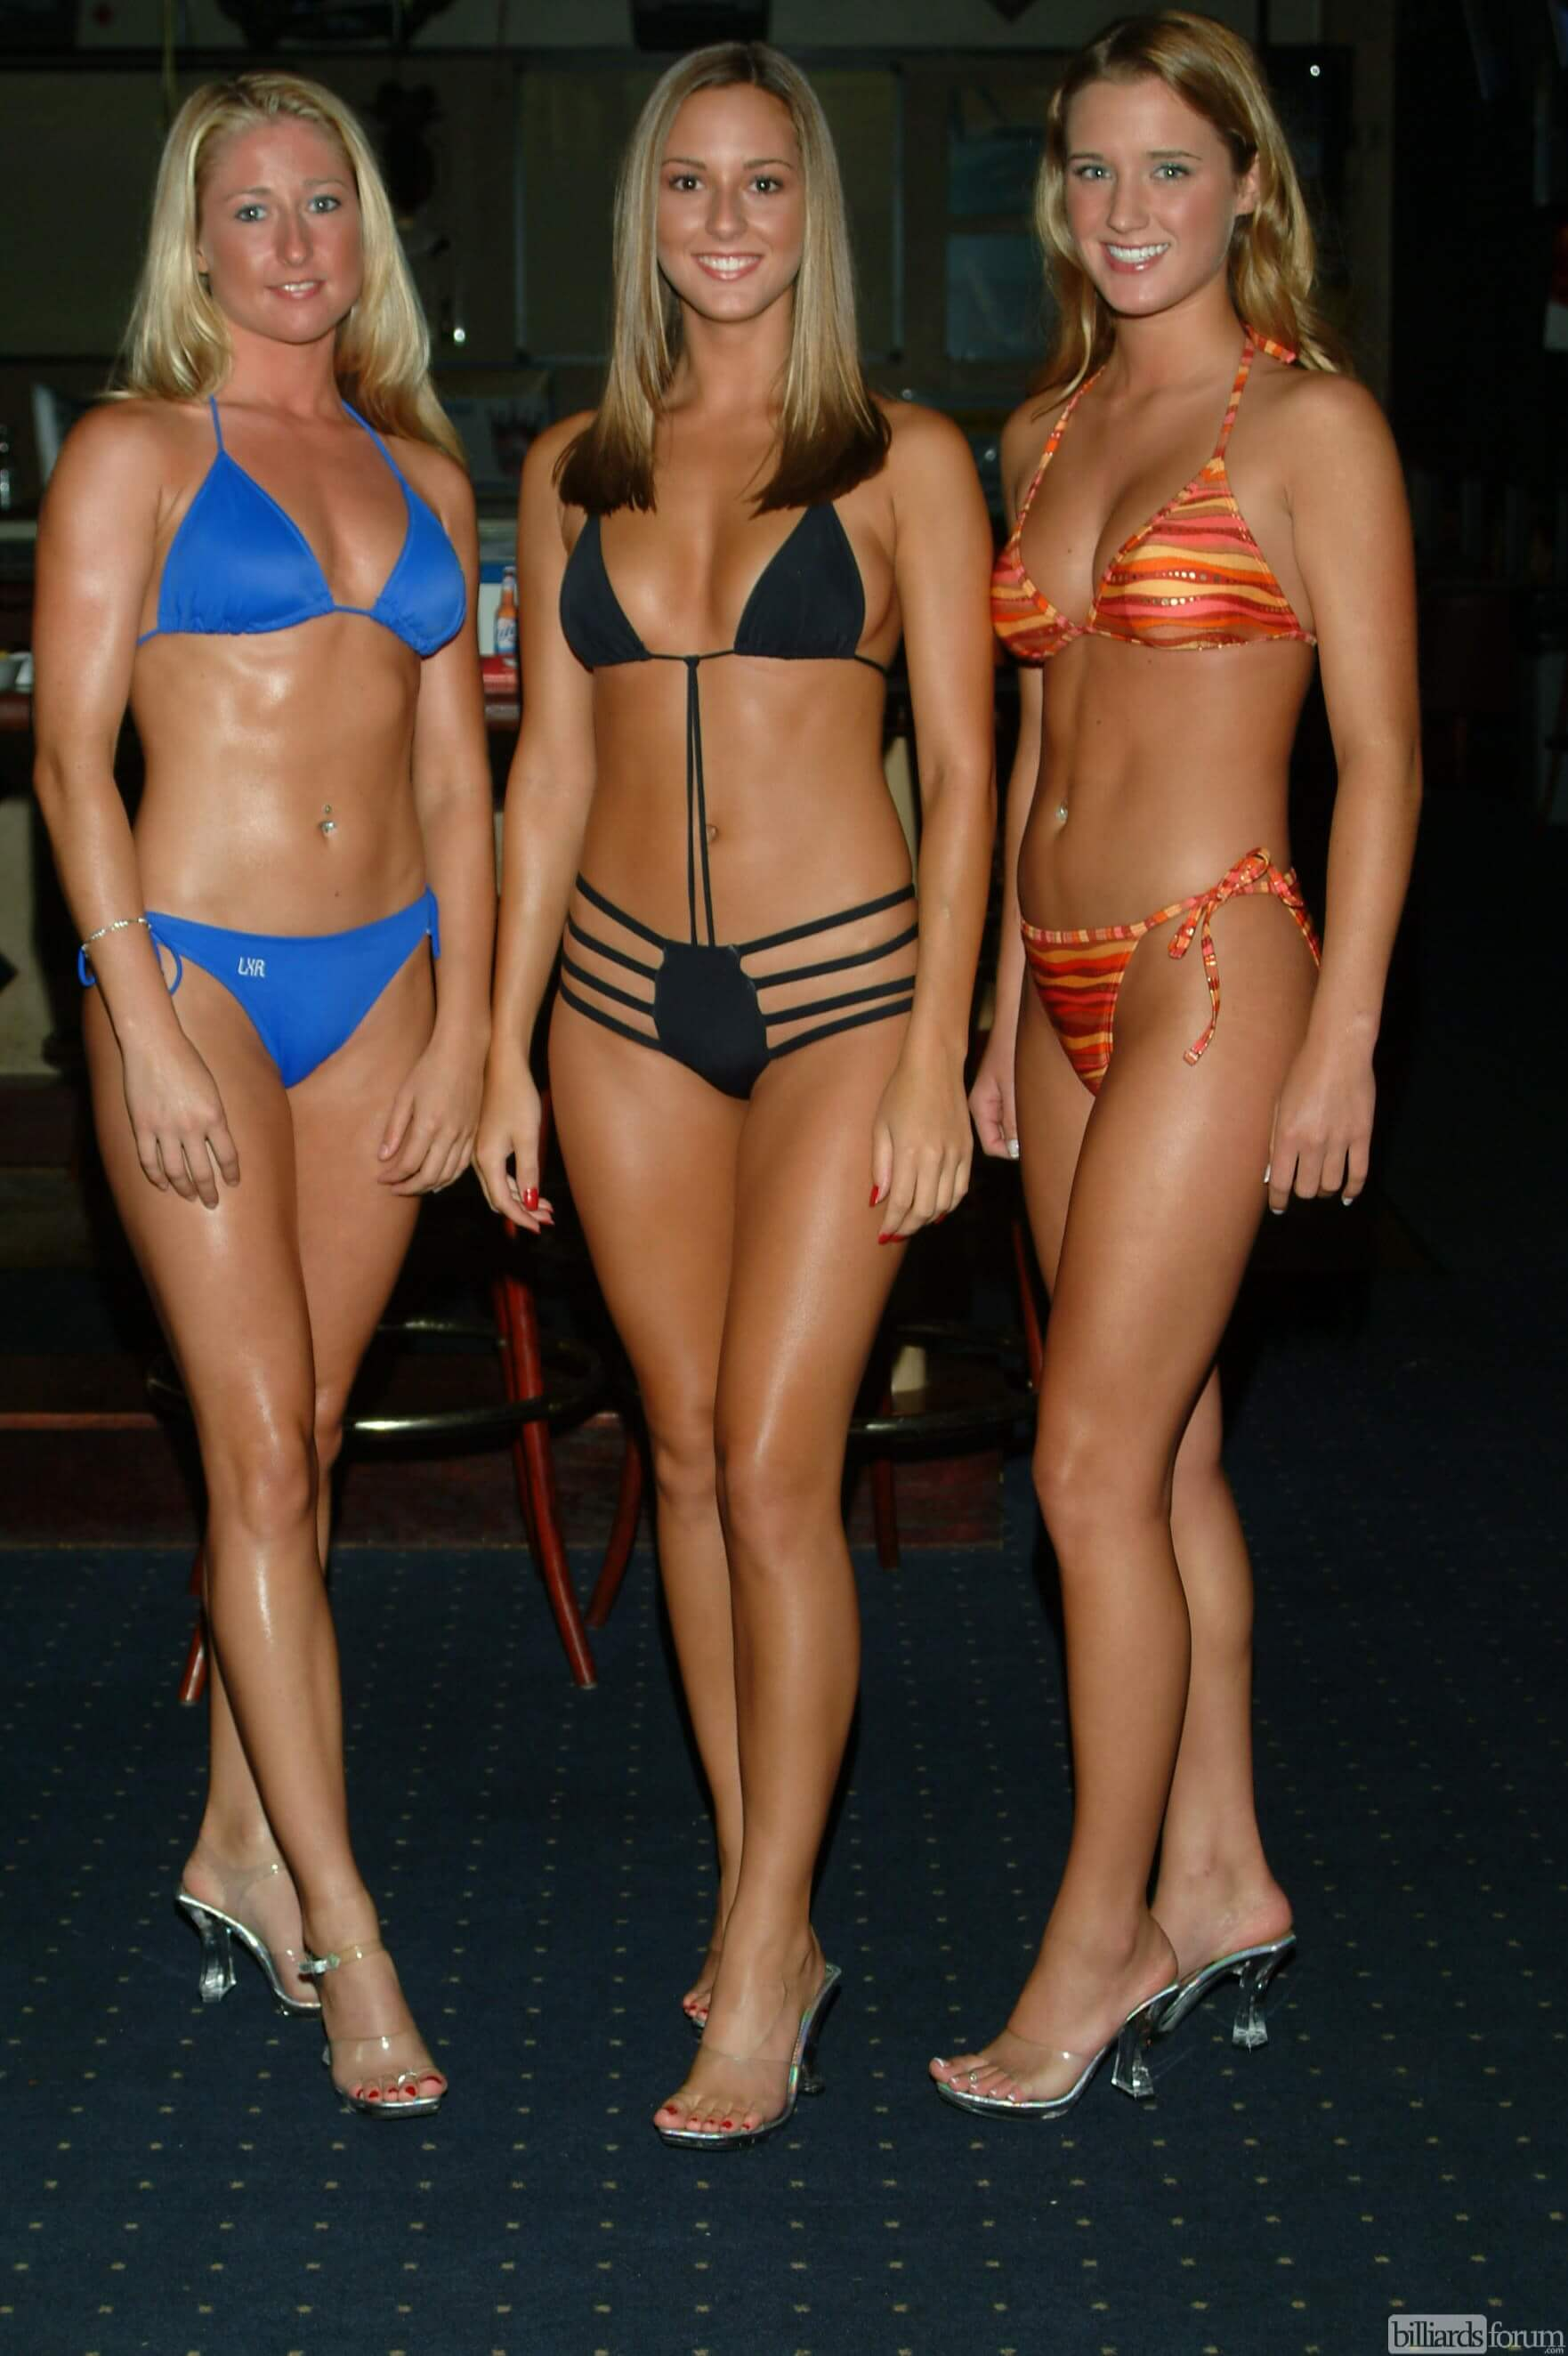 Bikini model competion site, with